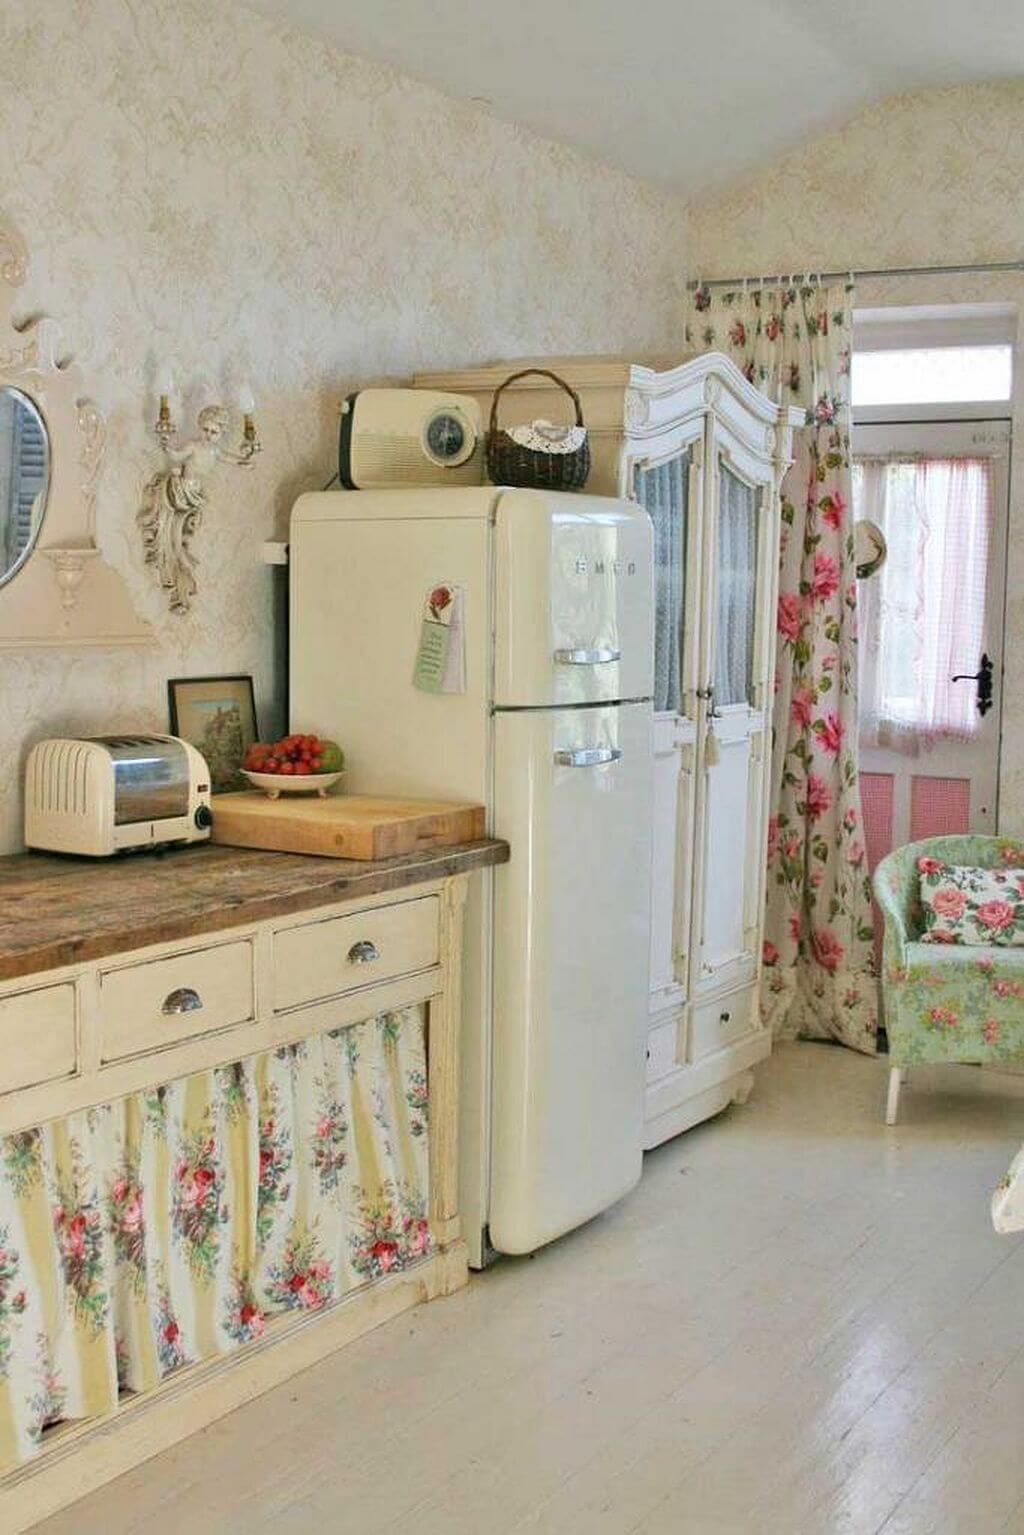 25 Lovely Shabby Chic Kitchen Ideas (Striking Rooms For Cooking) - 2B0Acb98914B74611D5Bffa95Ada3880